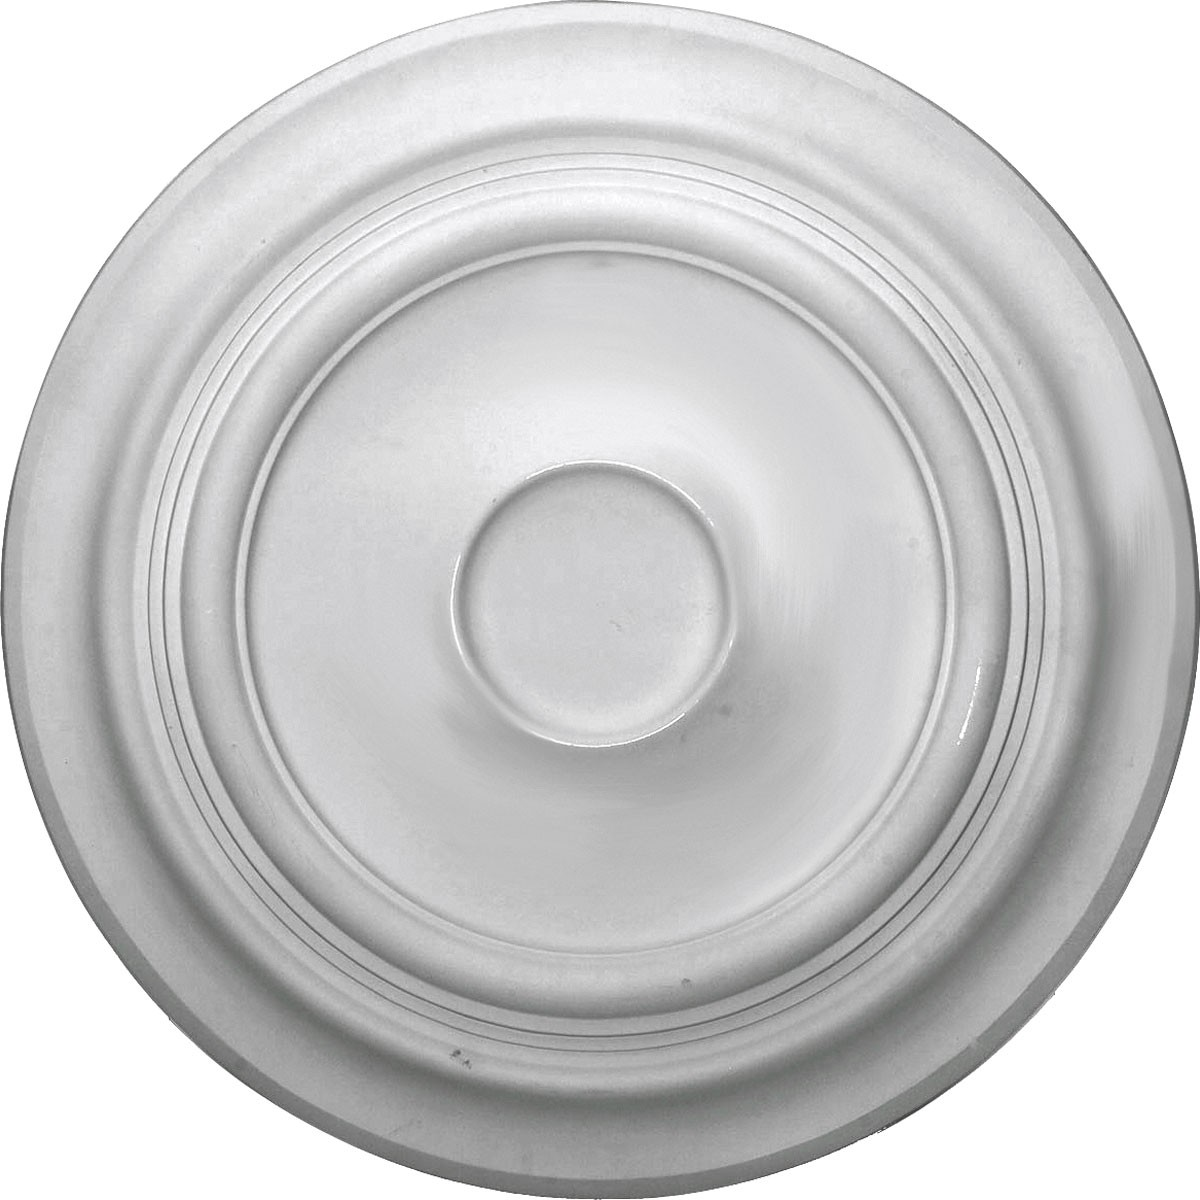 """EM-CM24TR - 24 3/8""""OD x 1 1/2""""P Traditional Ceiling Medallion (Fits Canopies up to 5 1/2"""")"""